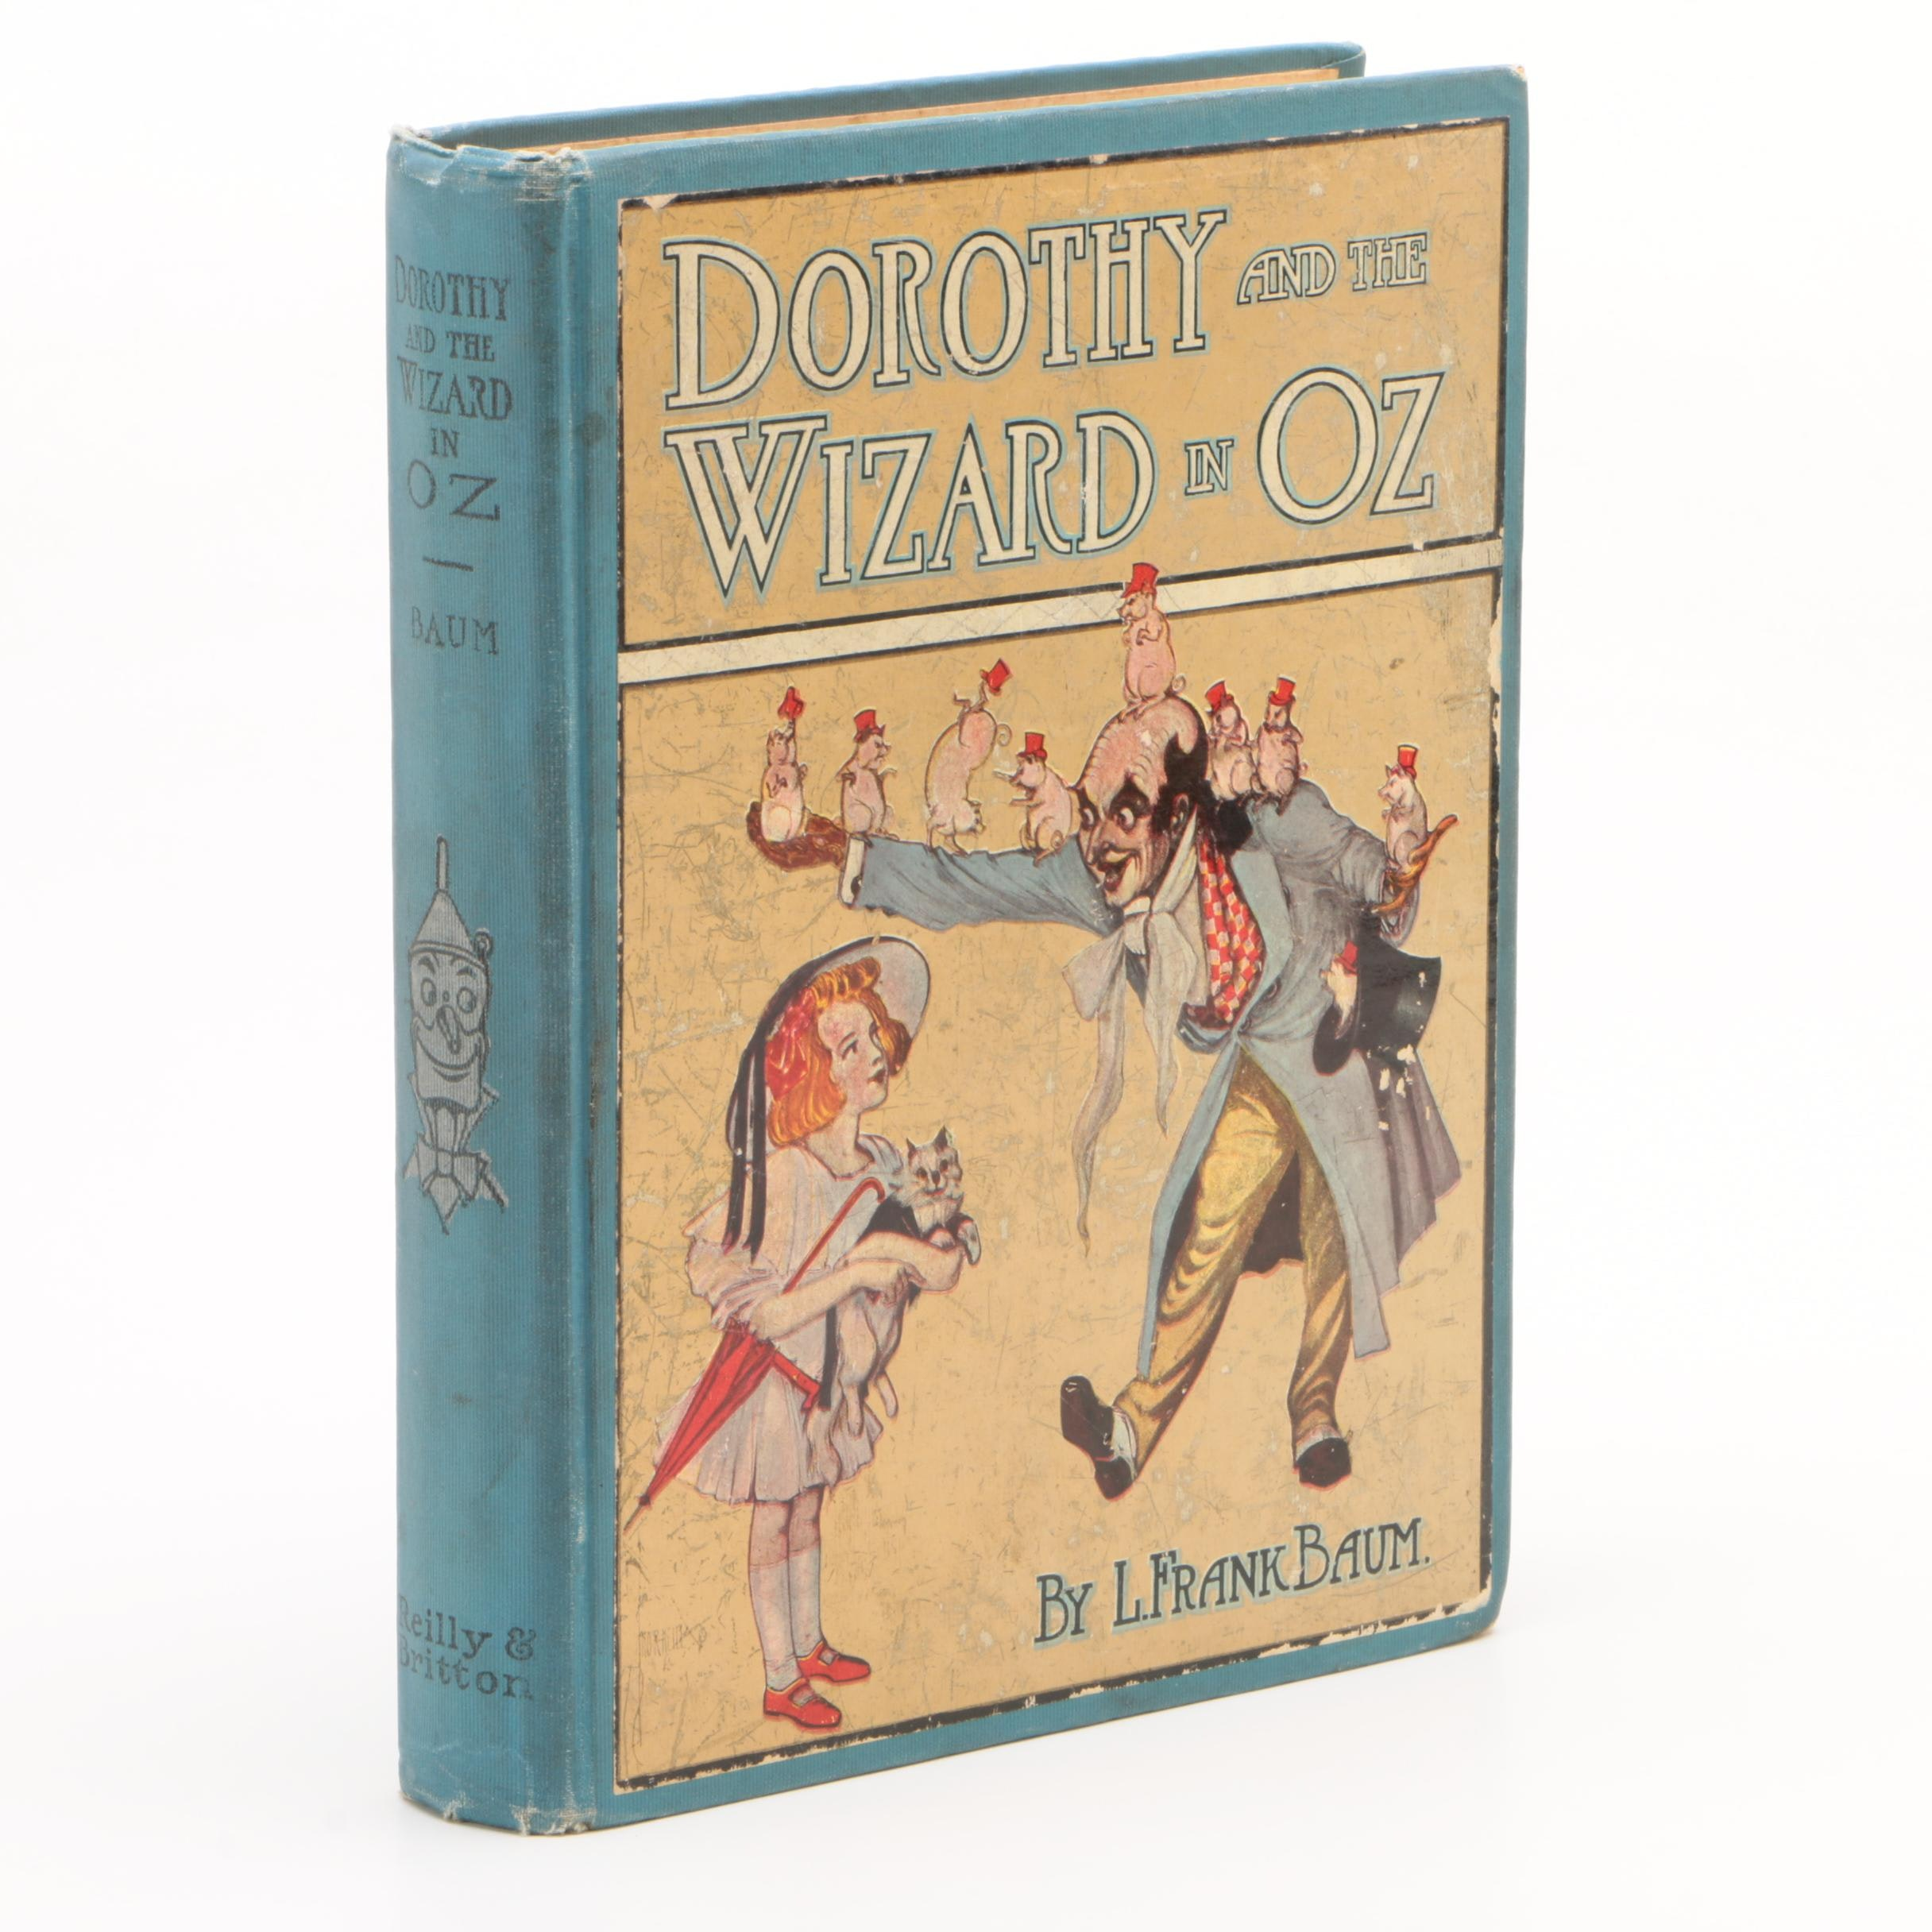 """1911 Second Printing """"Dorothy and the Wizard of Oz"""" by L. Frank Baum"""